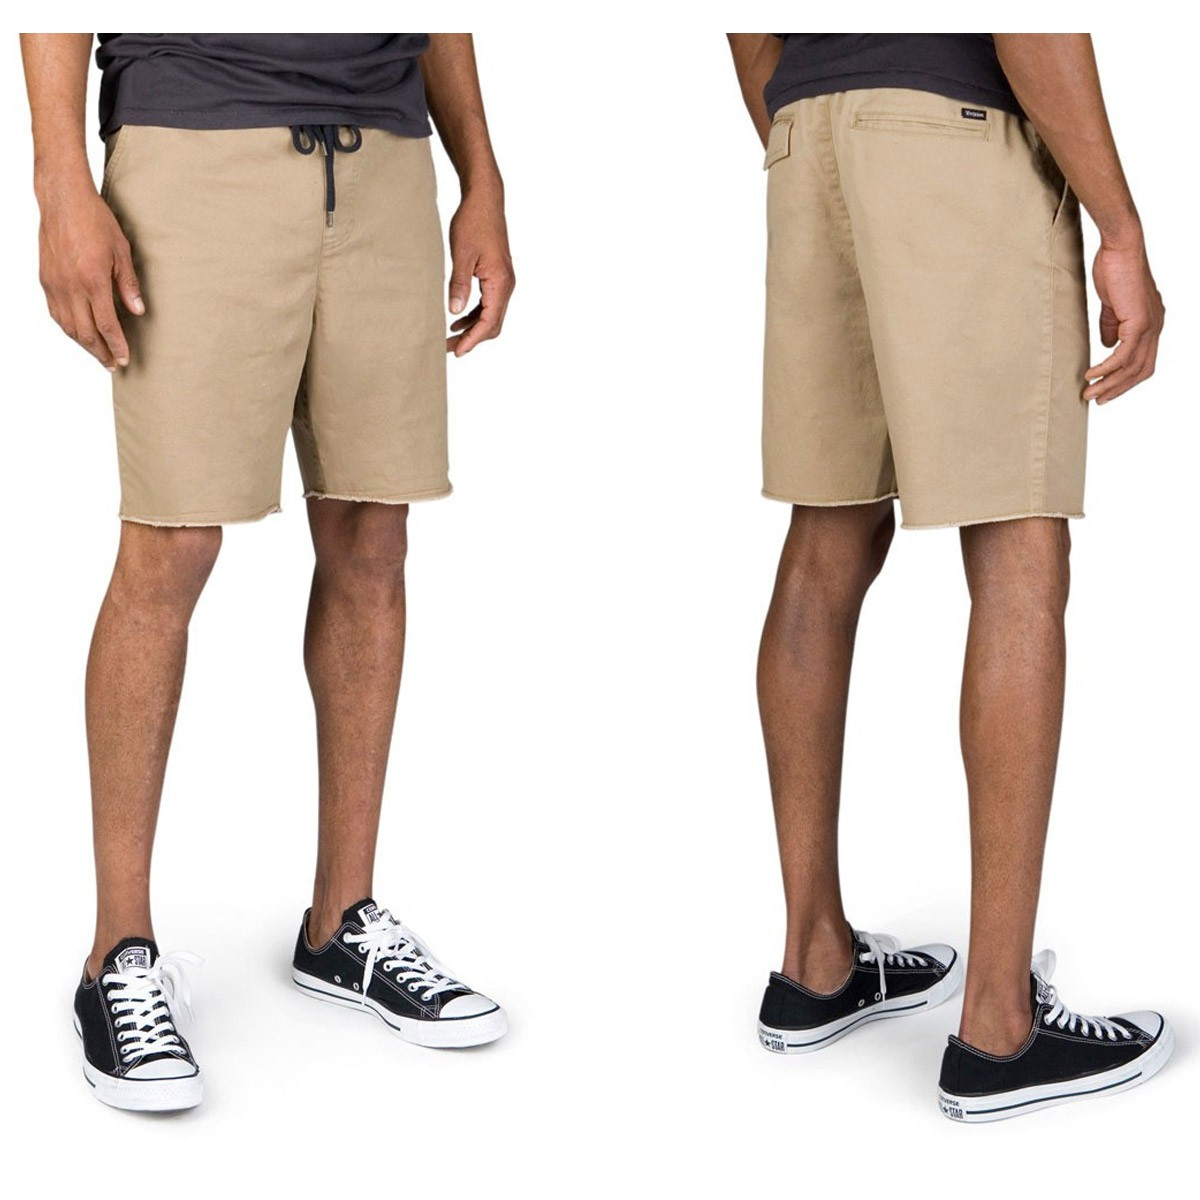 What Goes With Khaki Shorts - The Else